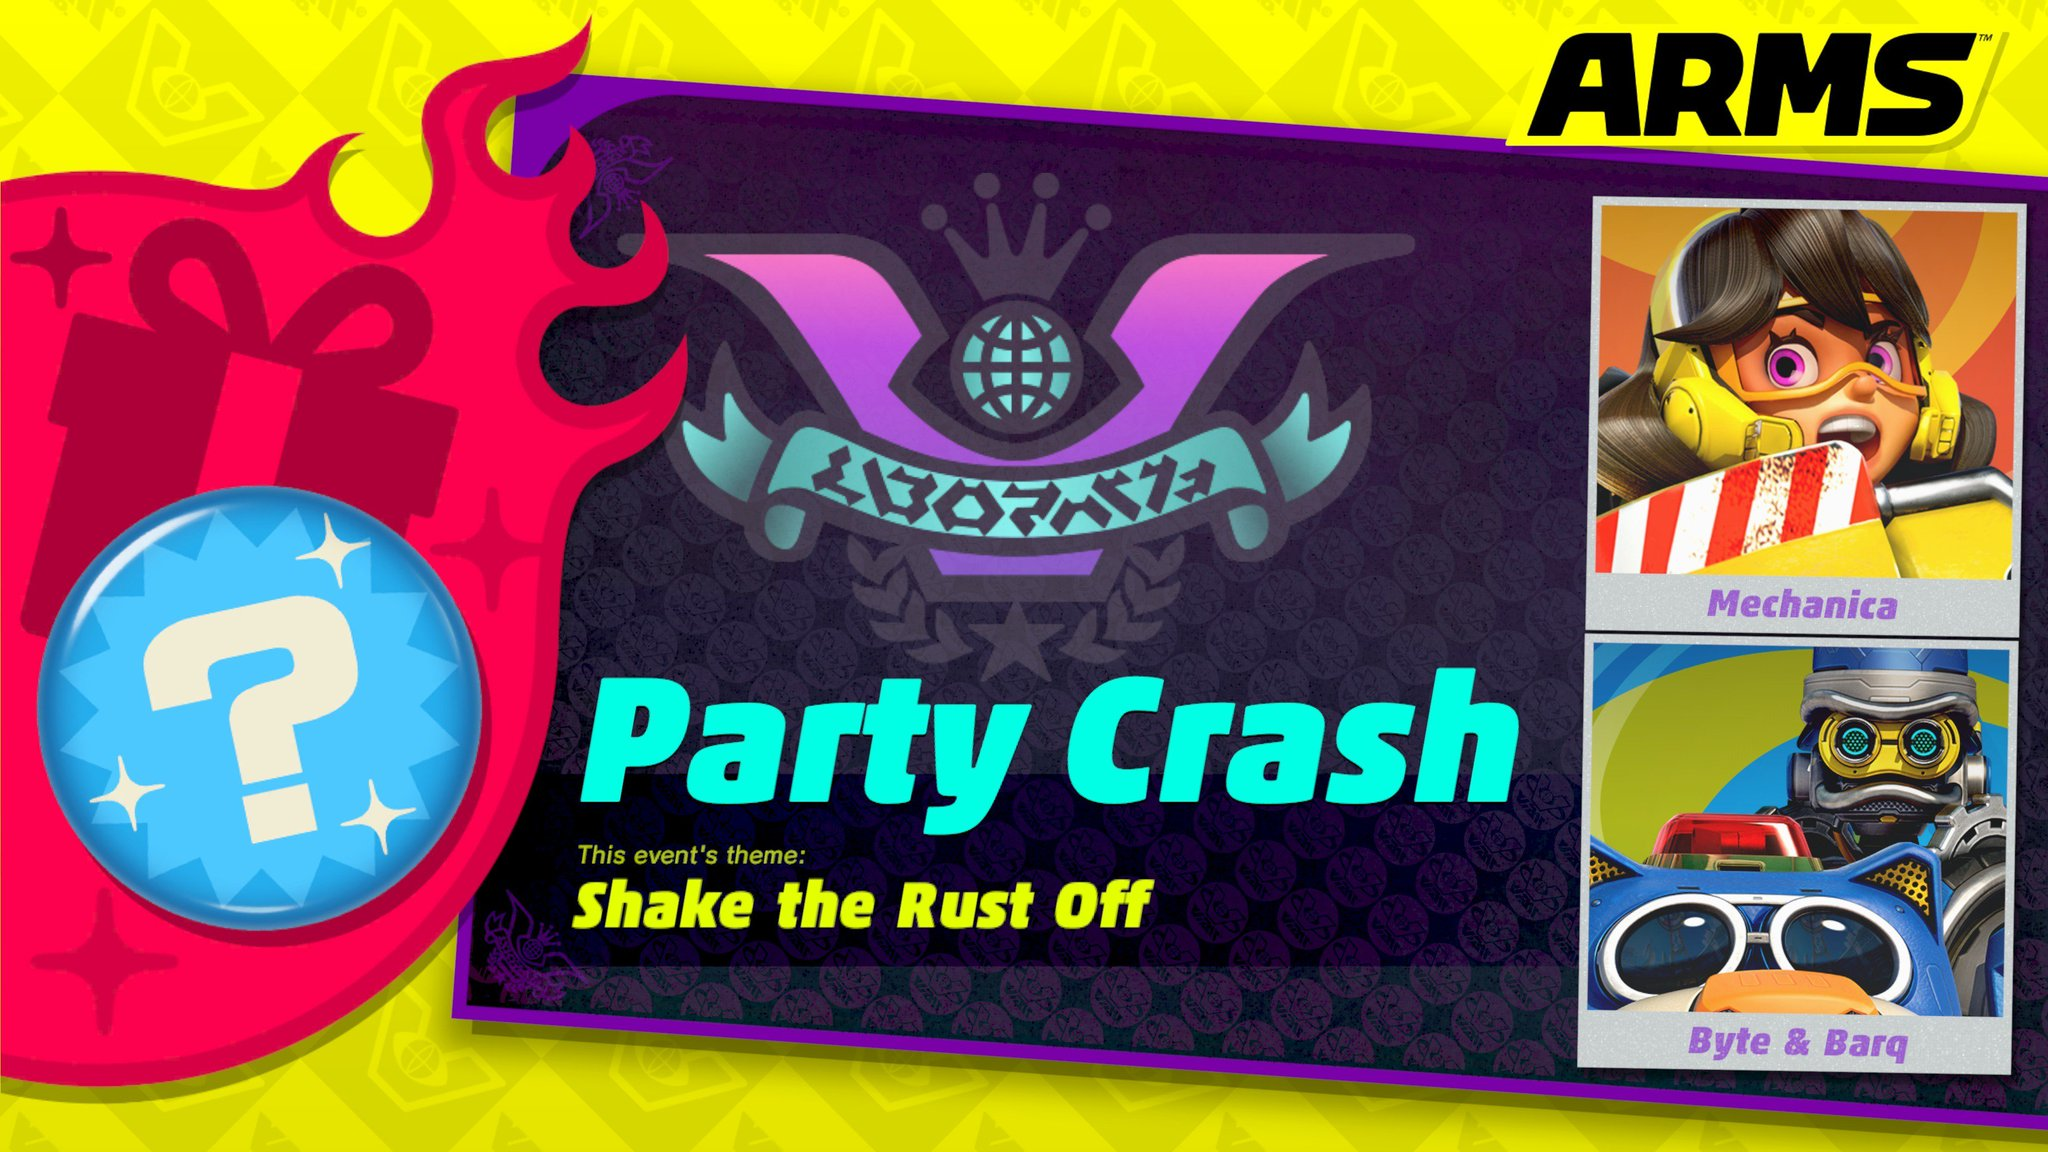 The #ARMS Party Crash is now underway! Which fighter are you supporting? https://t.co/Ql1BD2EBqh